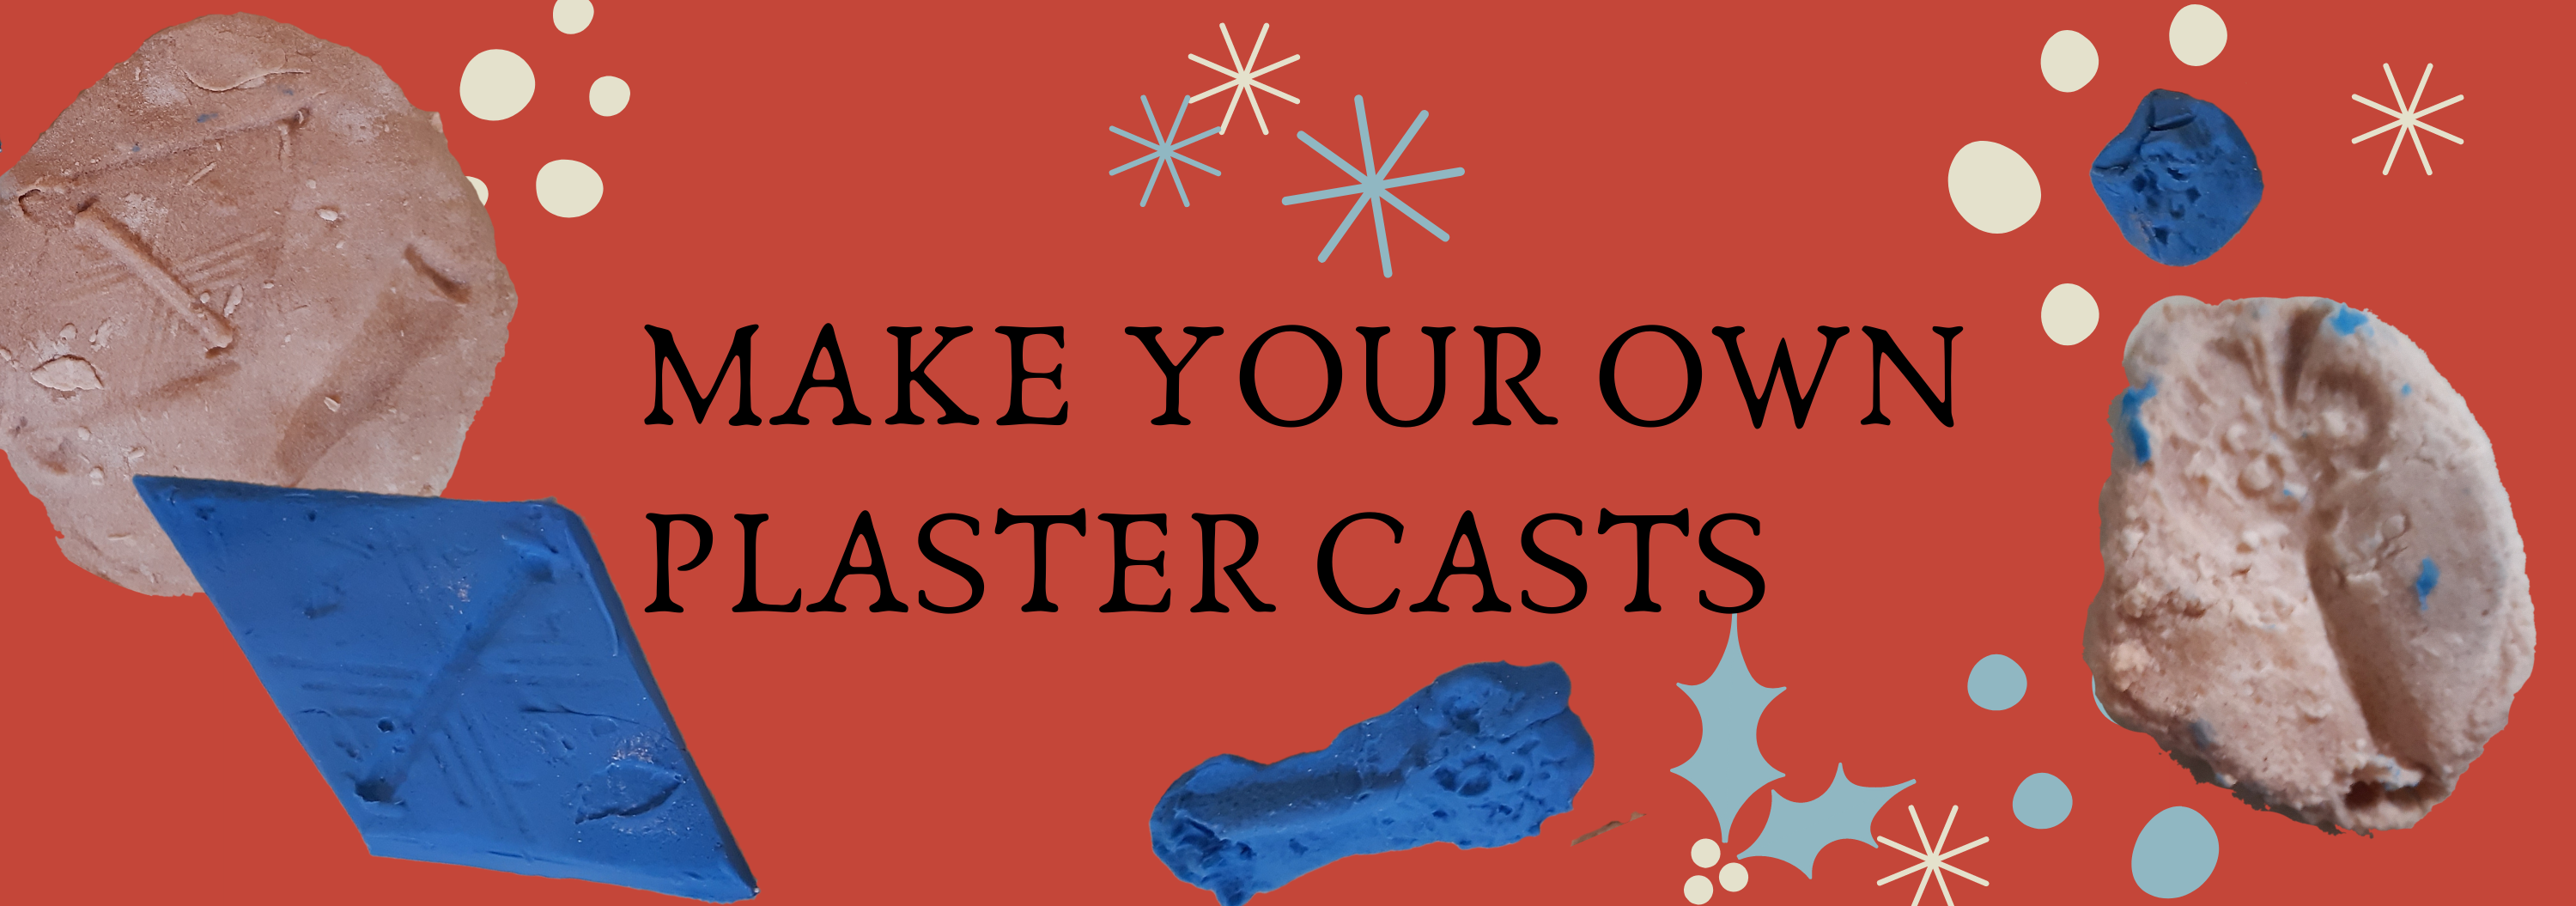 Make your own plaster casts on red background